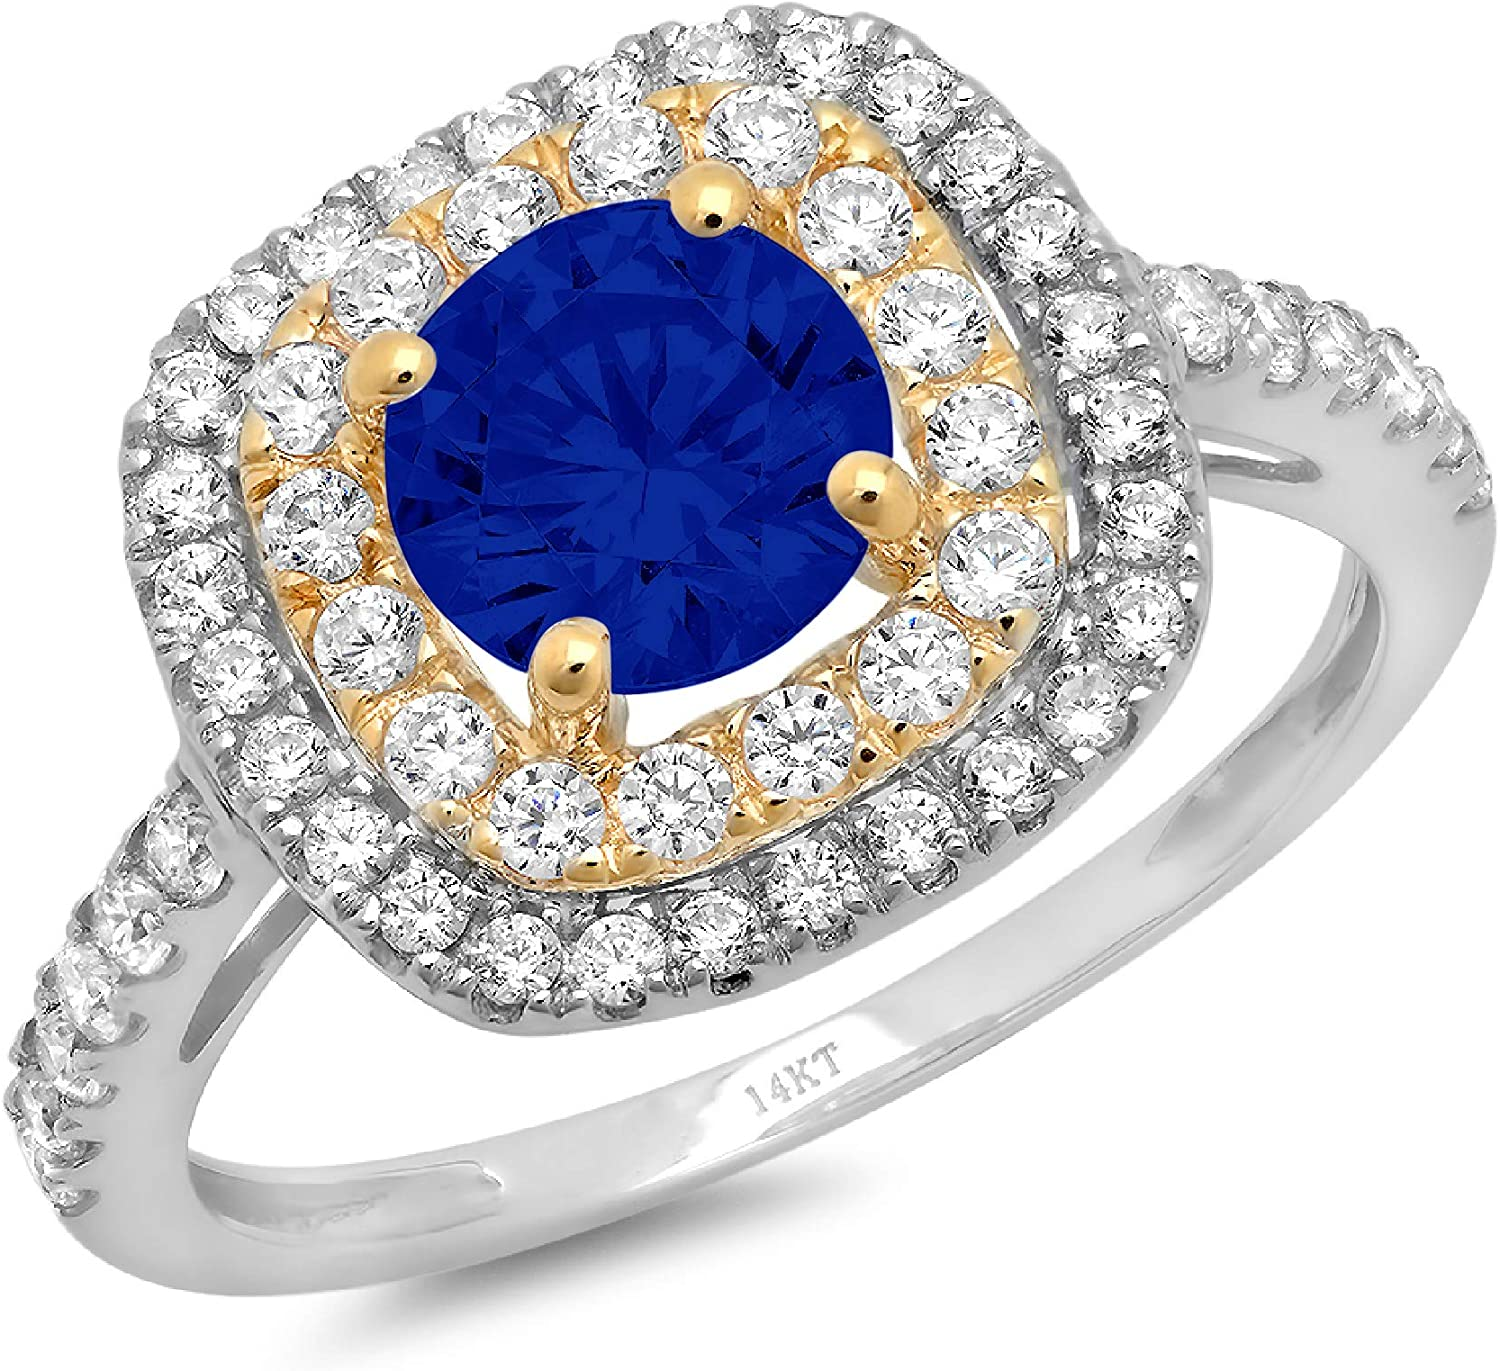 1.69ct Round Cut Solitaire double Halo Flawless Ideal Genuine Cubic Zirconia Blue Sapphire Engagement Promise Statement Anniversary Bridal Wedding Accent Designer Ring 14k White & Yellow Gold